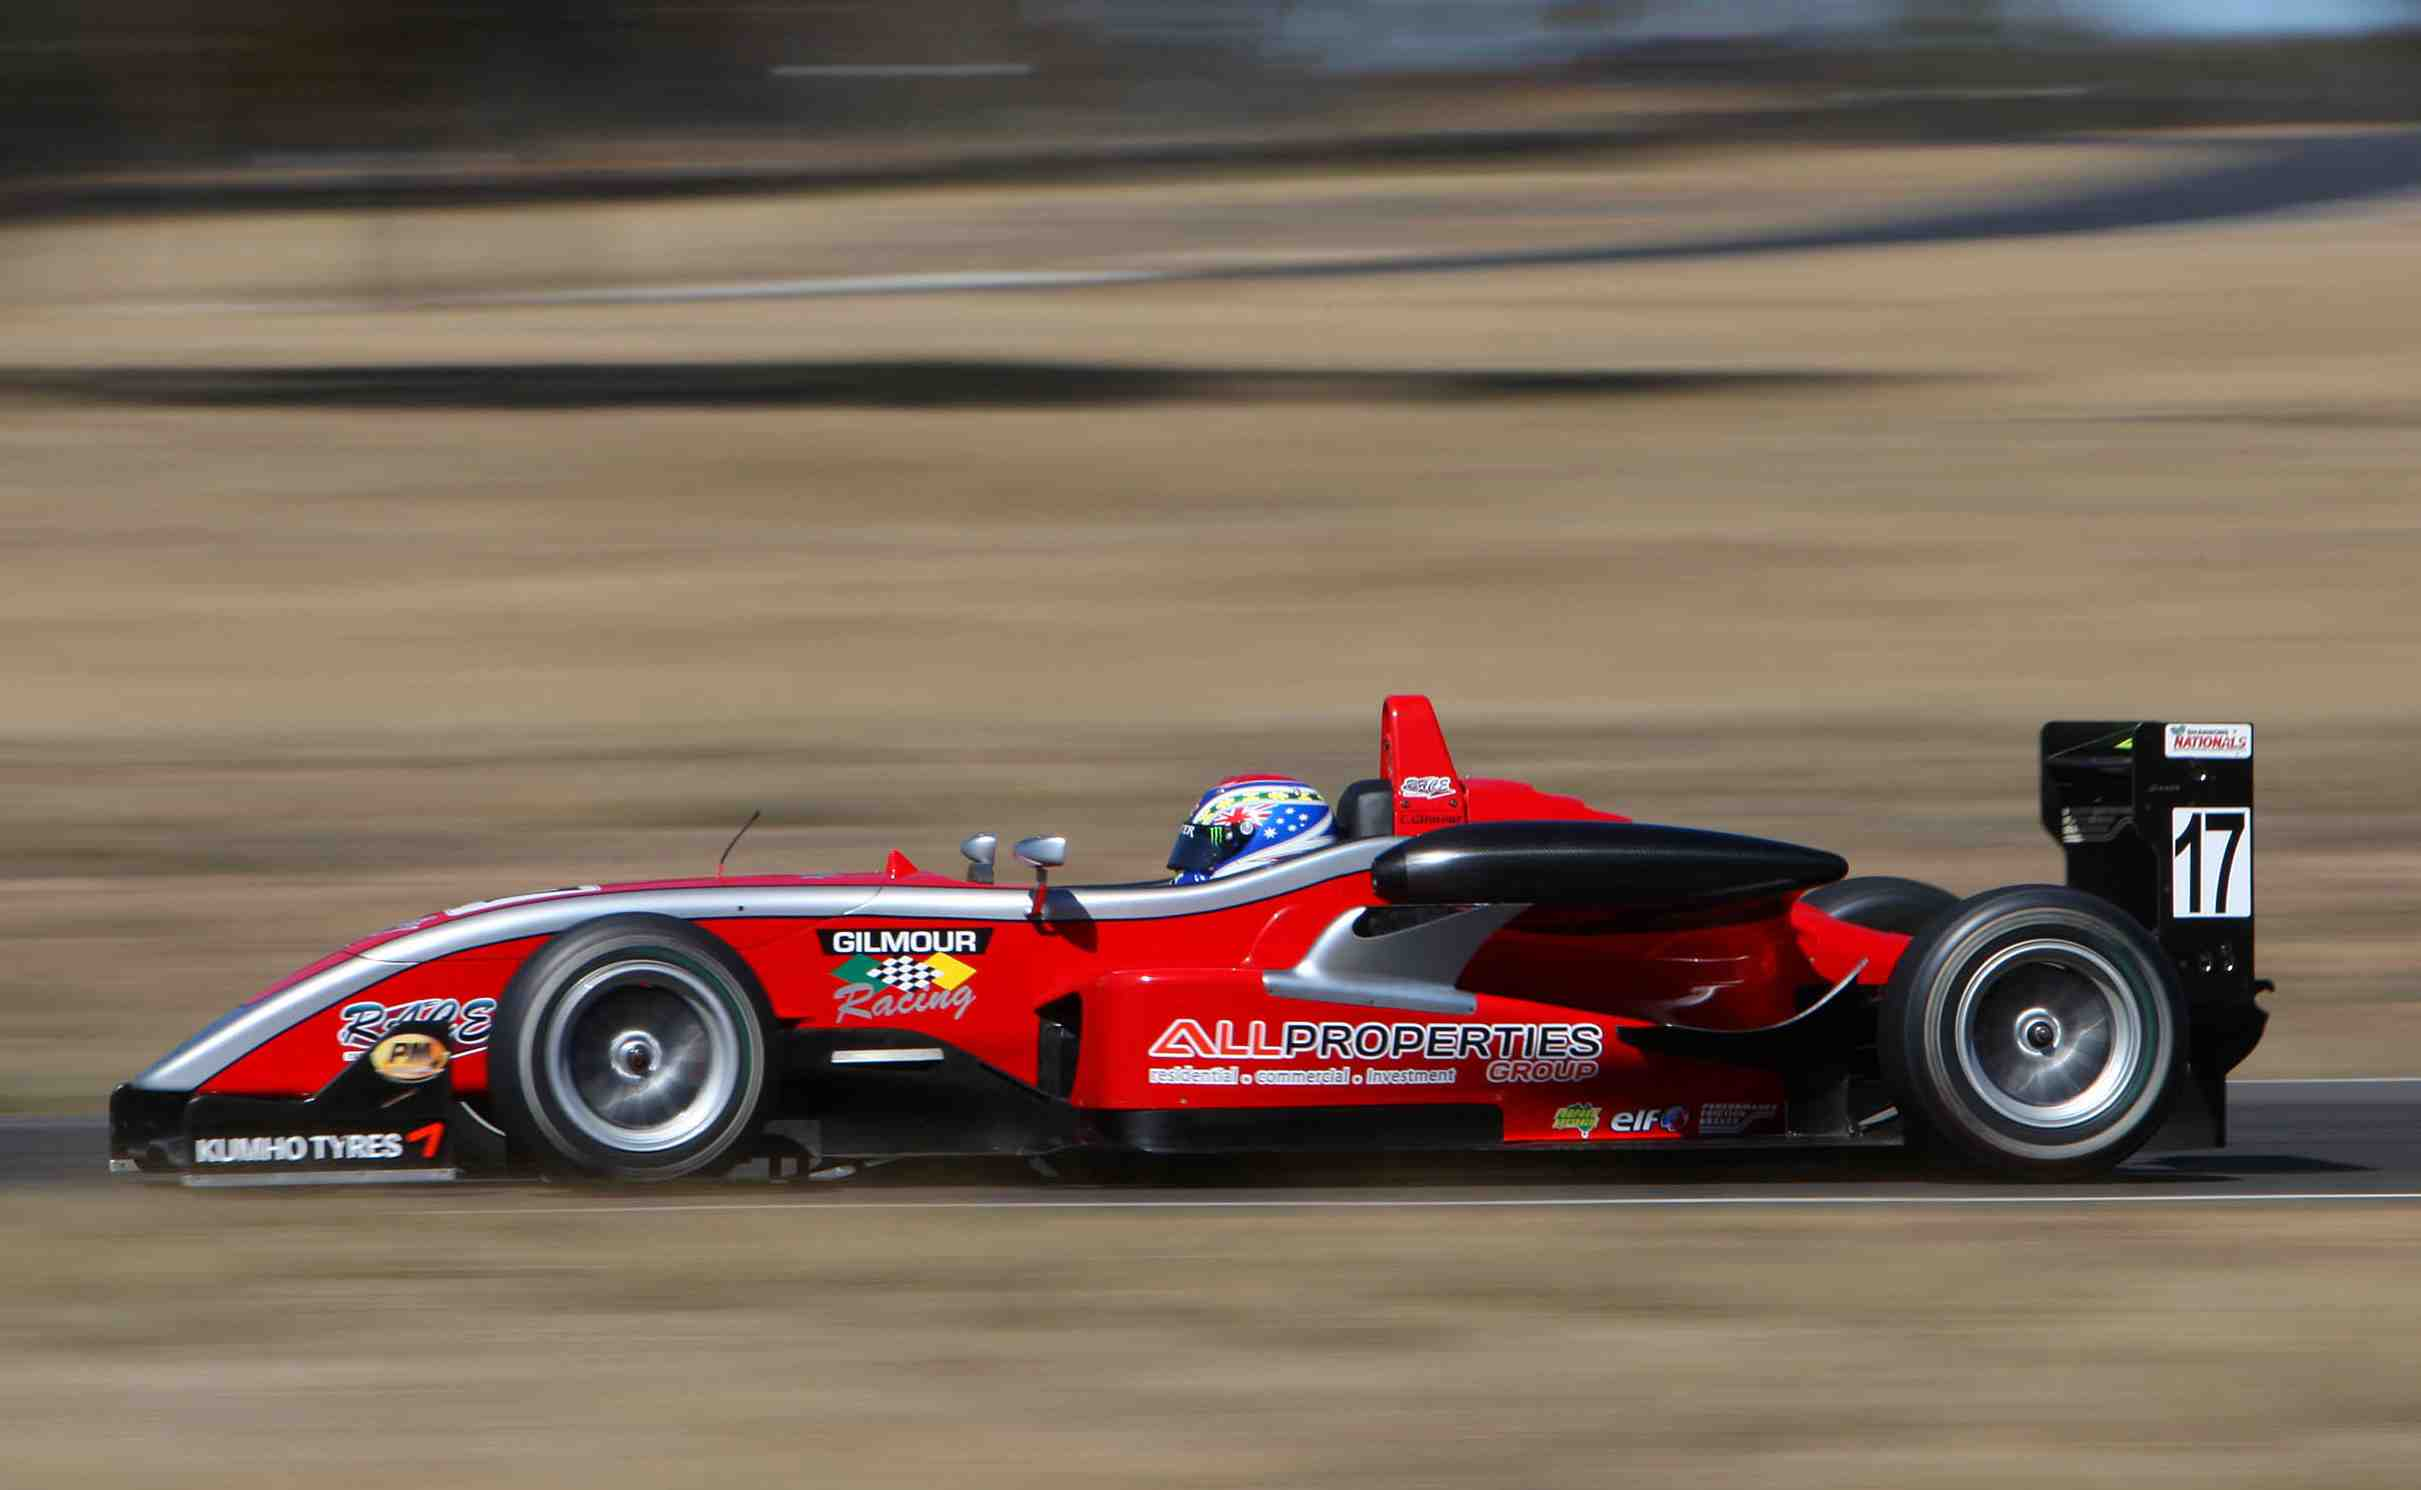 Chris Gilmour surges to F3 title lead